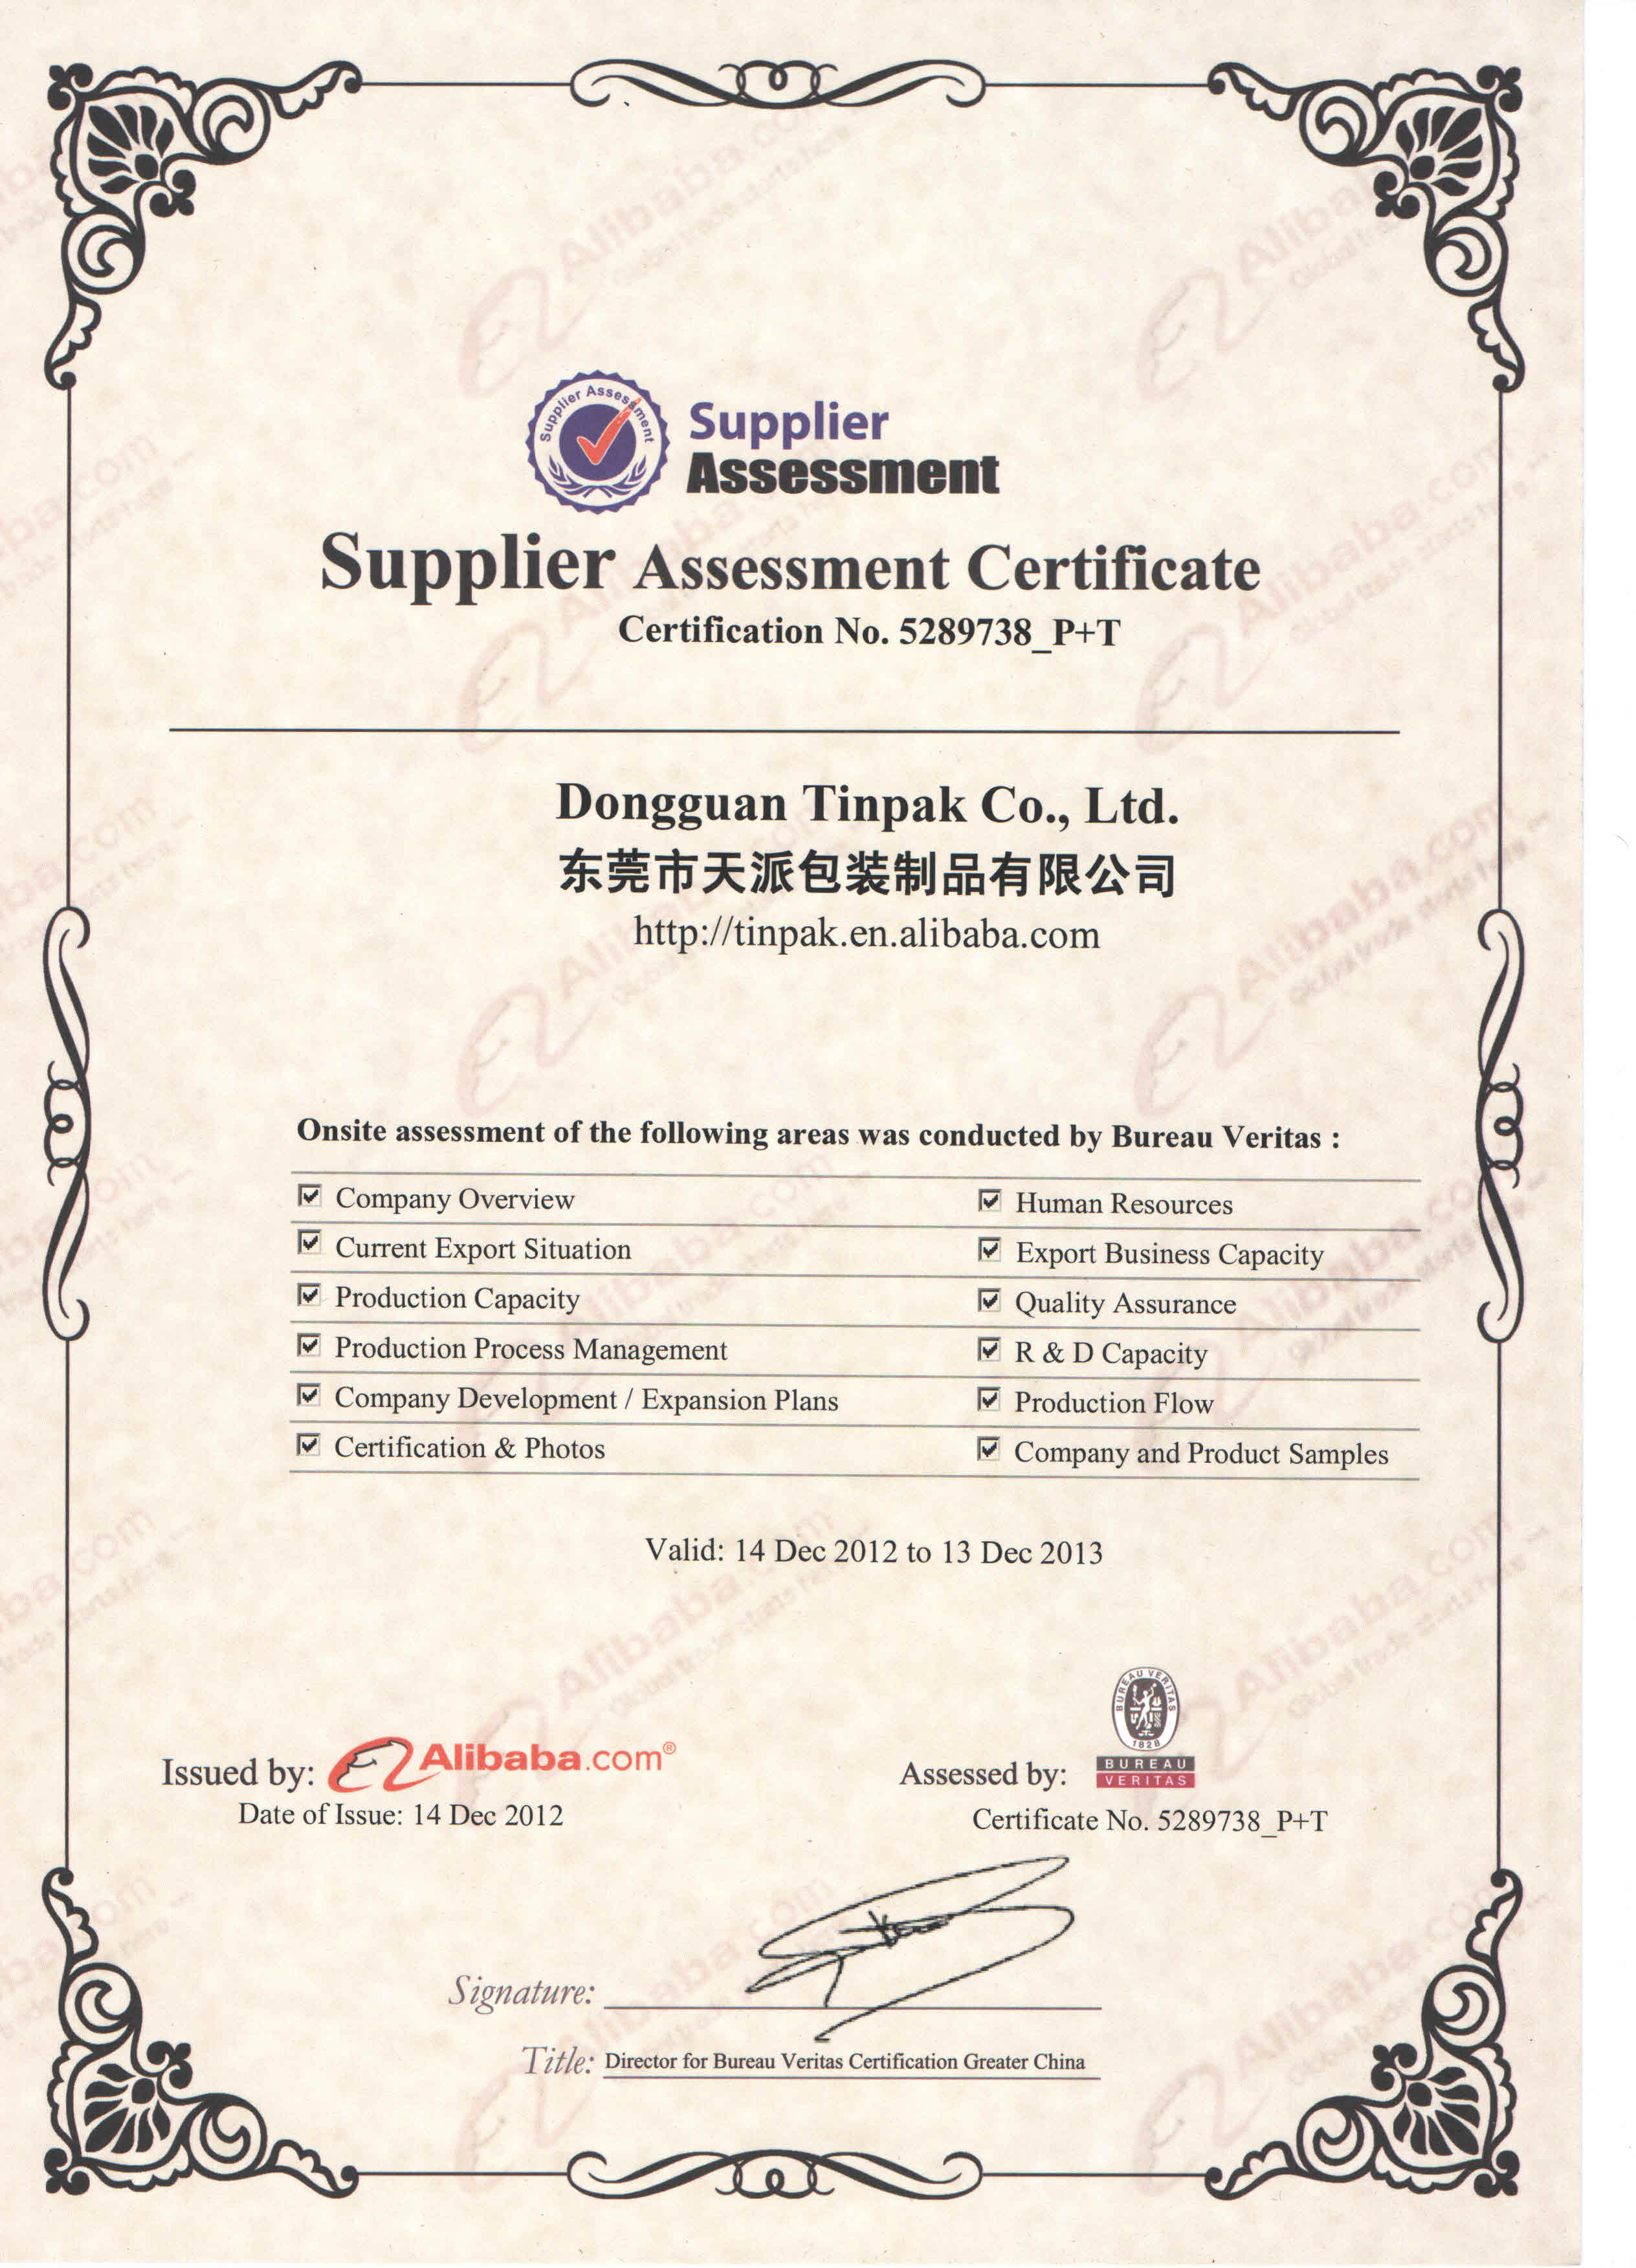 BV assessed tin box company in China